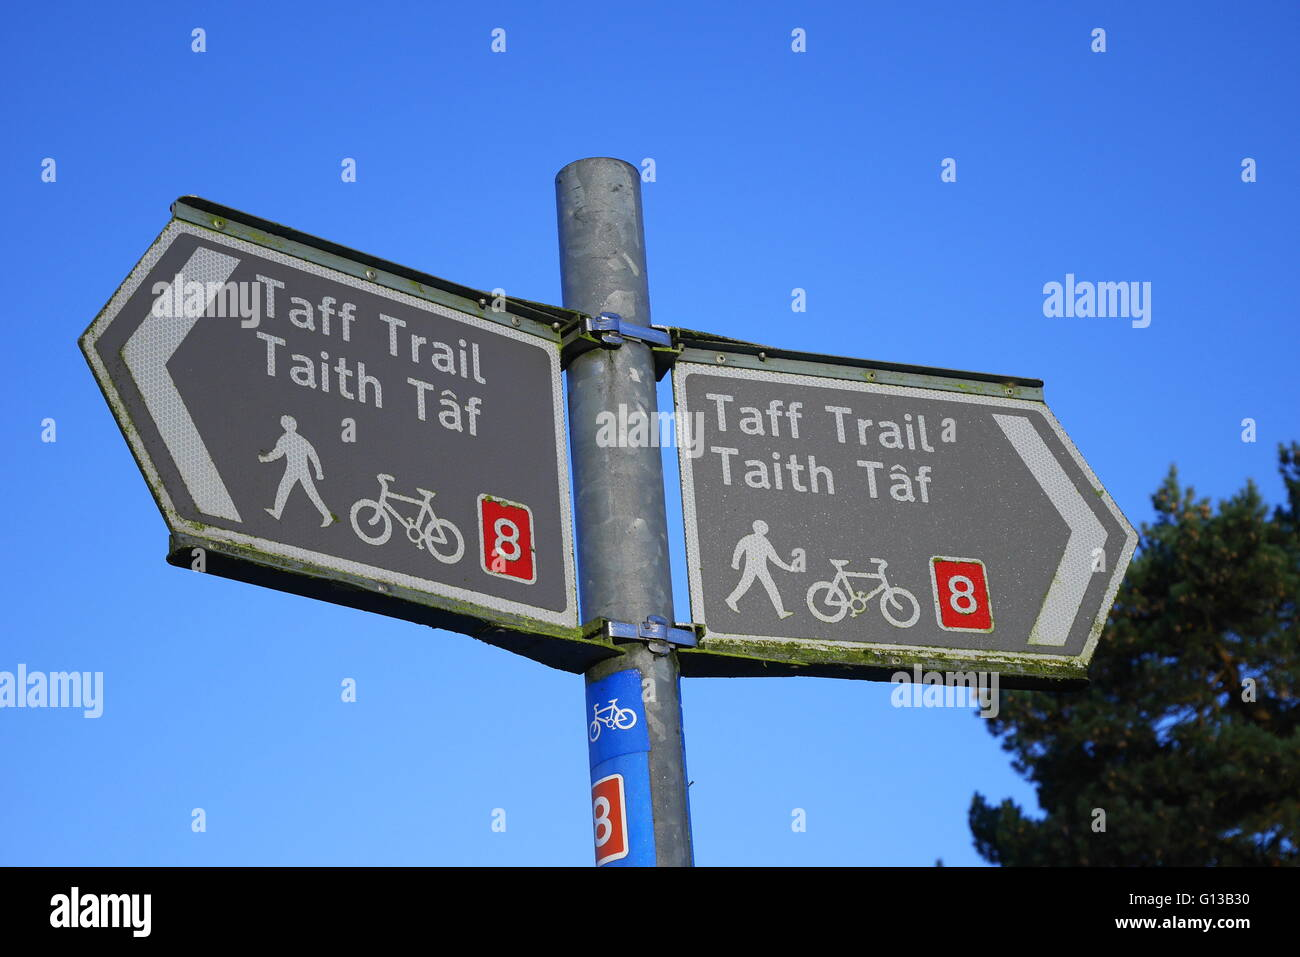 Sign in English and Welsh indicating the Taff Trail, Cardiff, Wales, UK - Stock Image